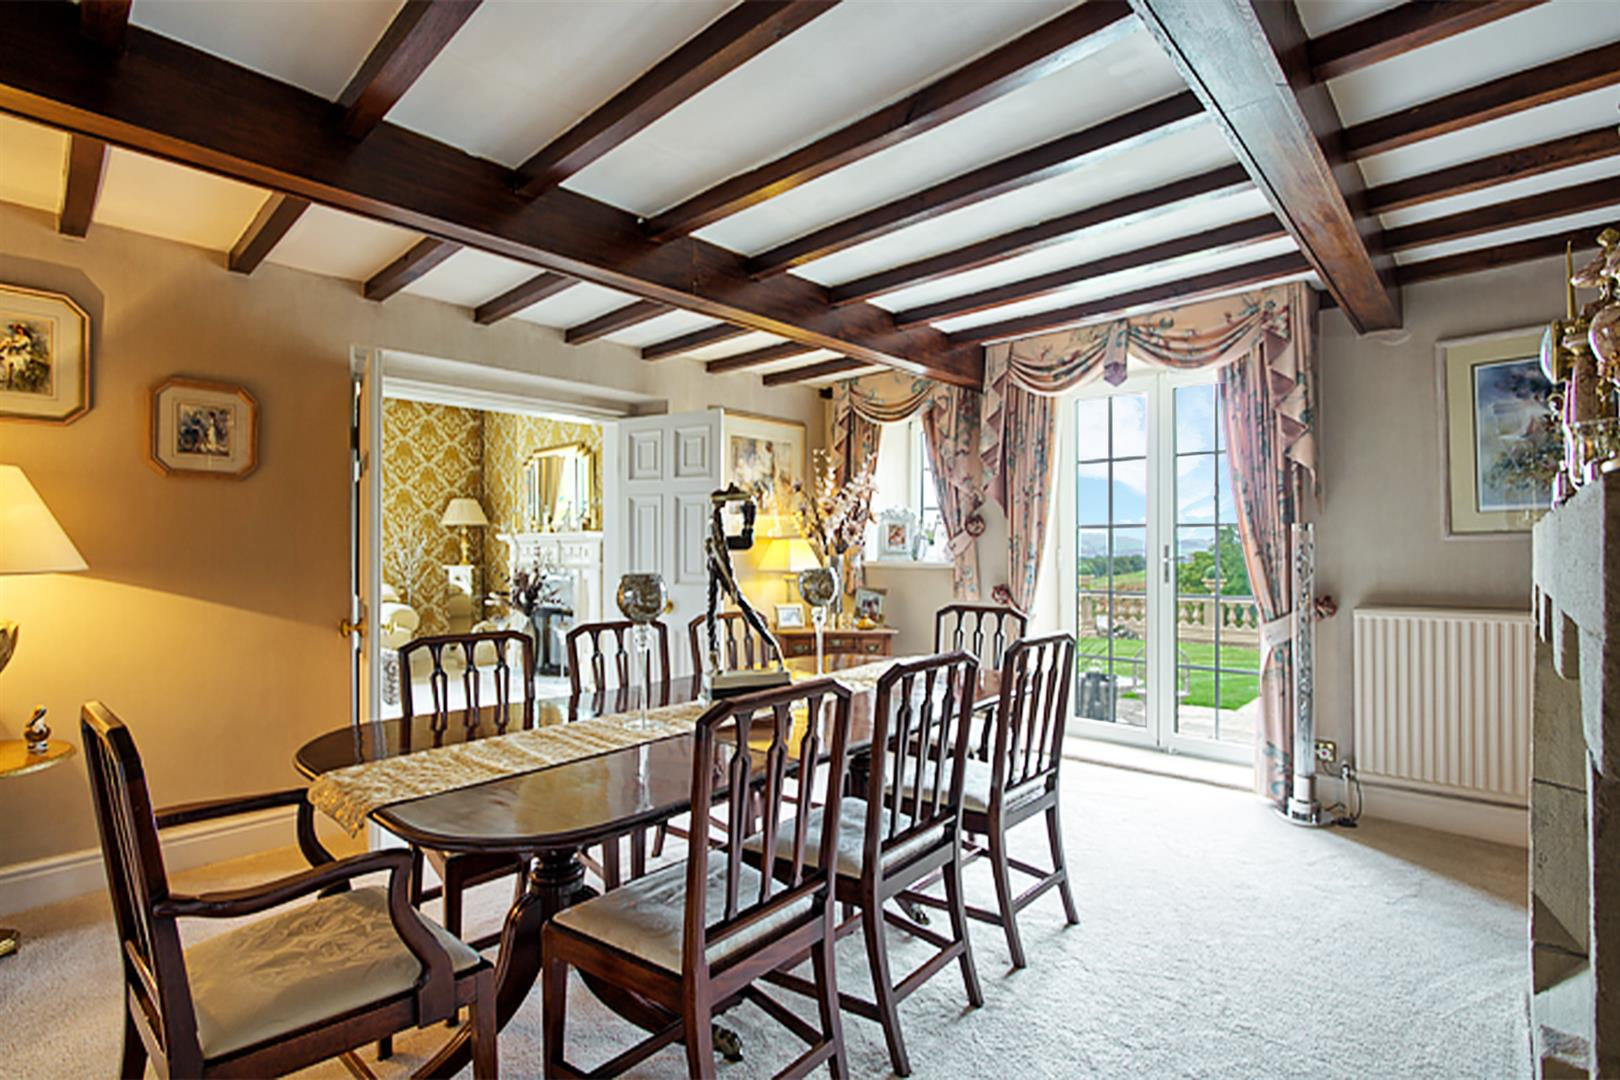 4 bedroom house For Sale in Bolton - dining room 2.png.